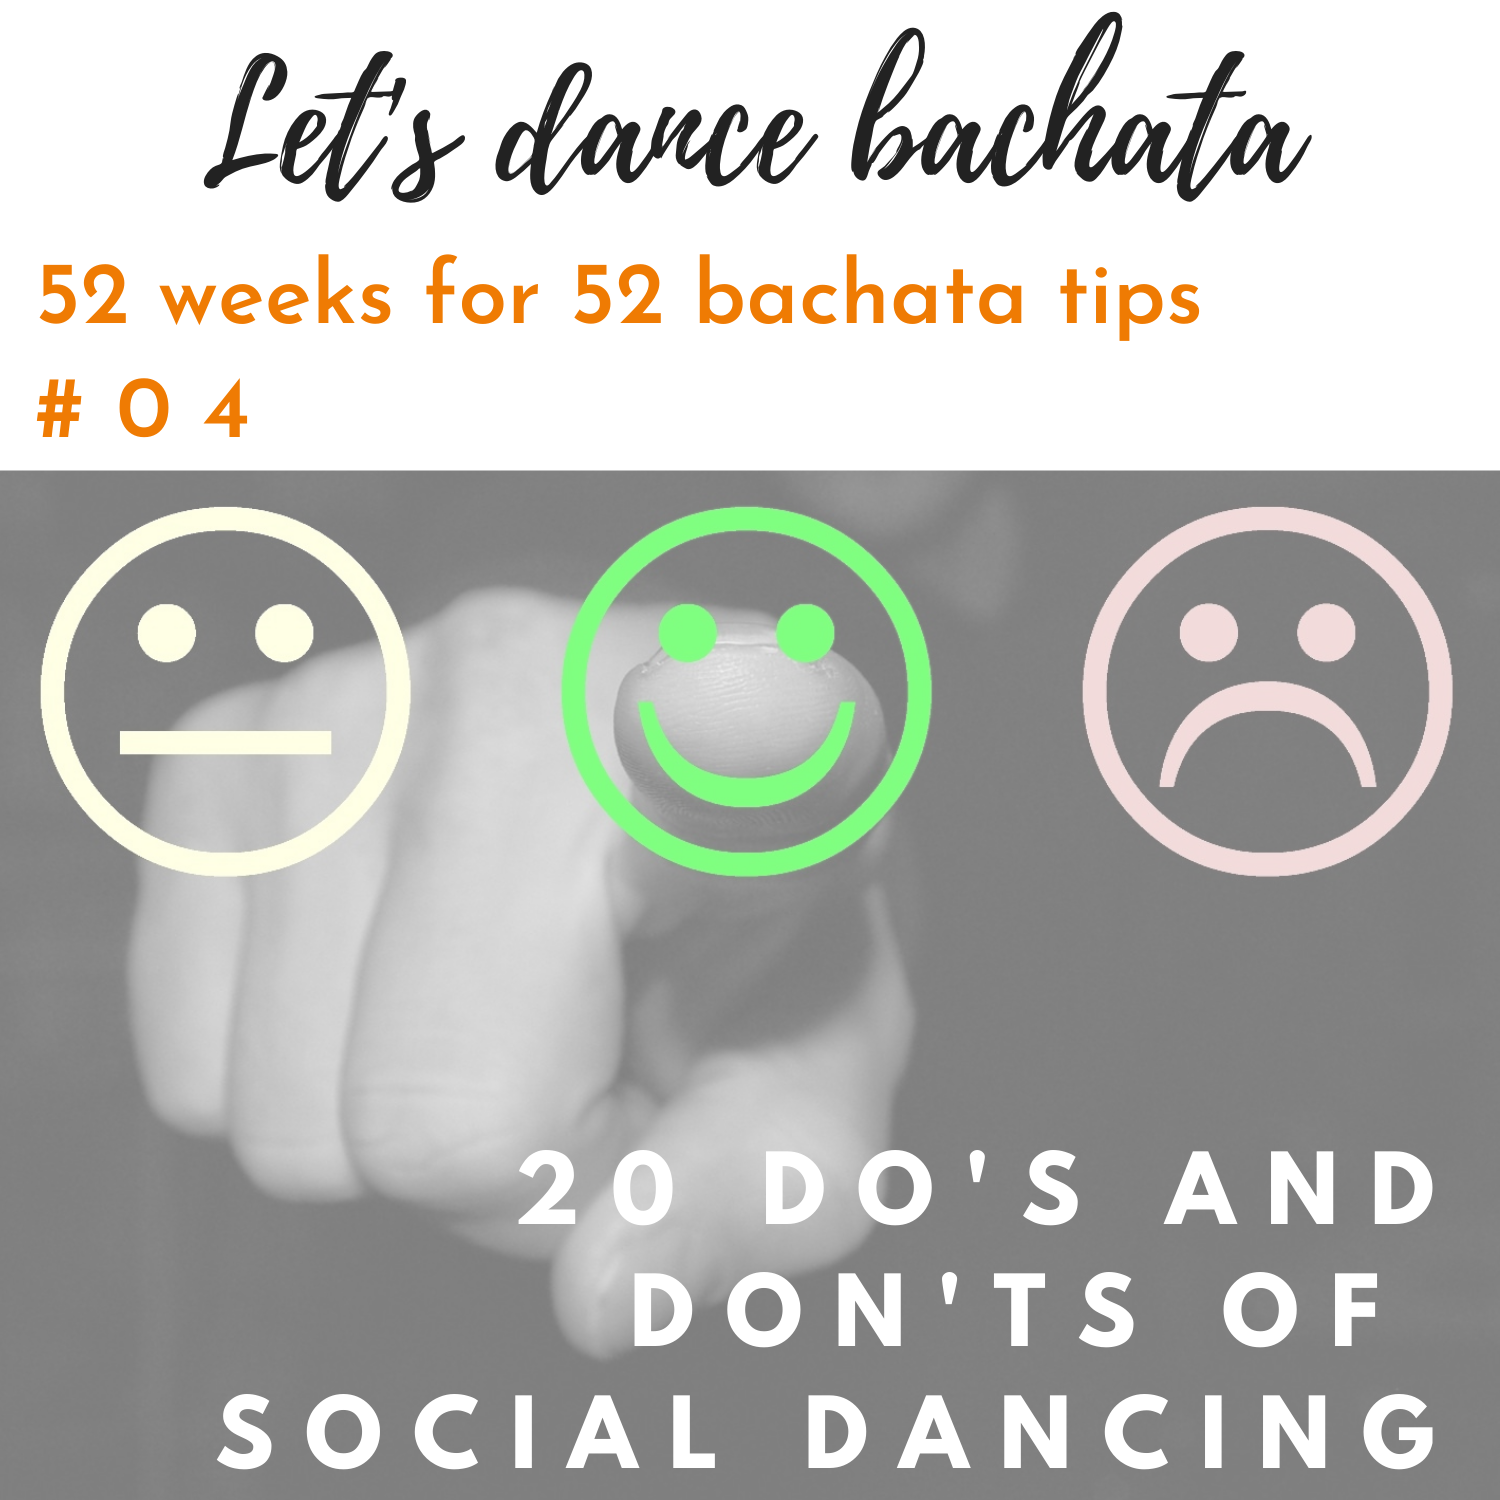 20 do's and don'ts of social dancing